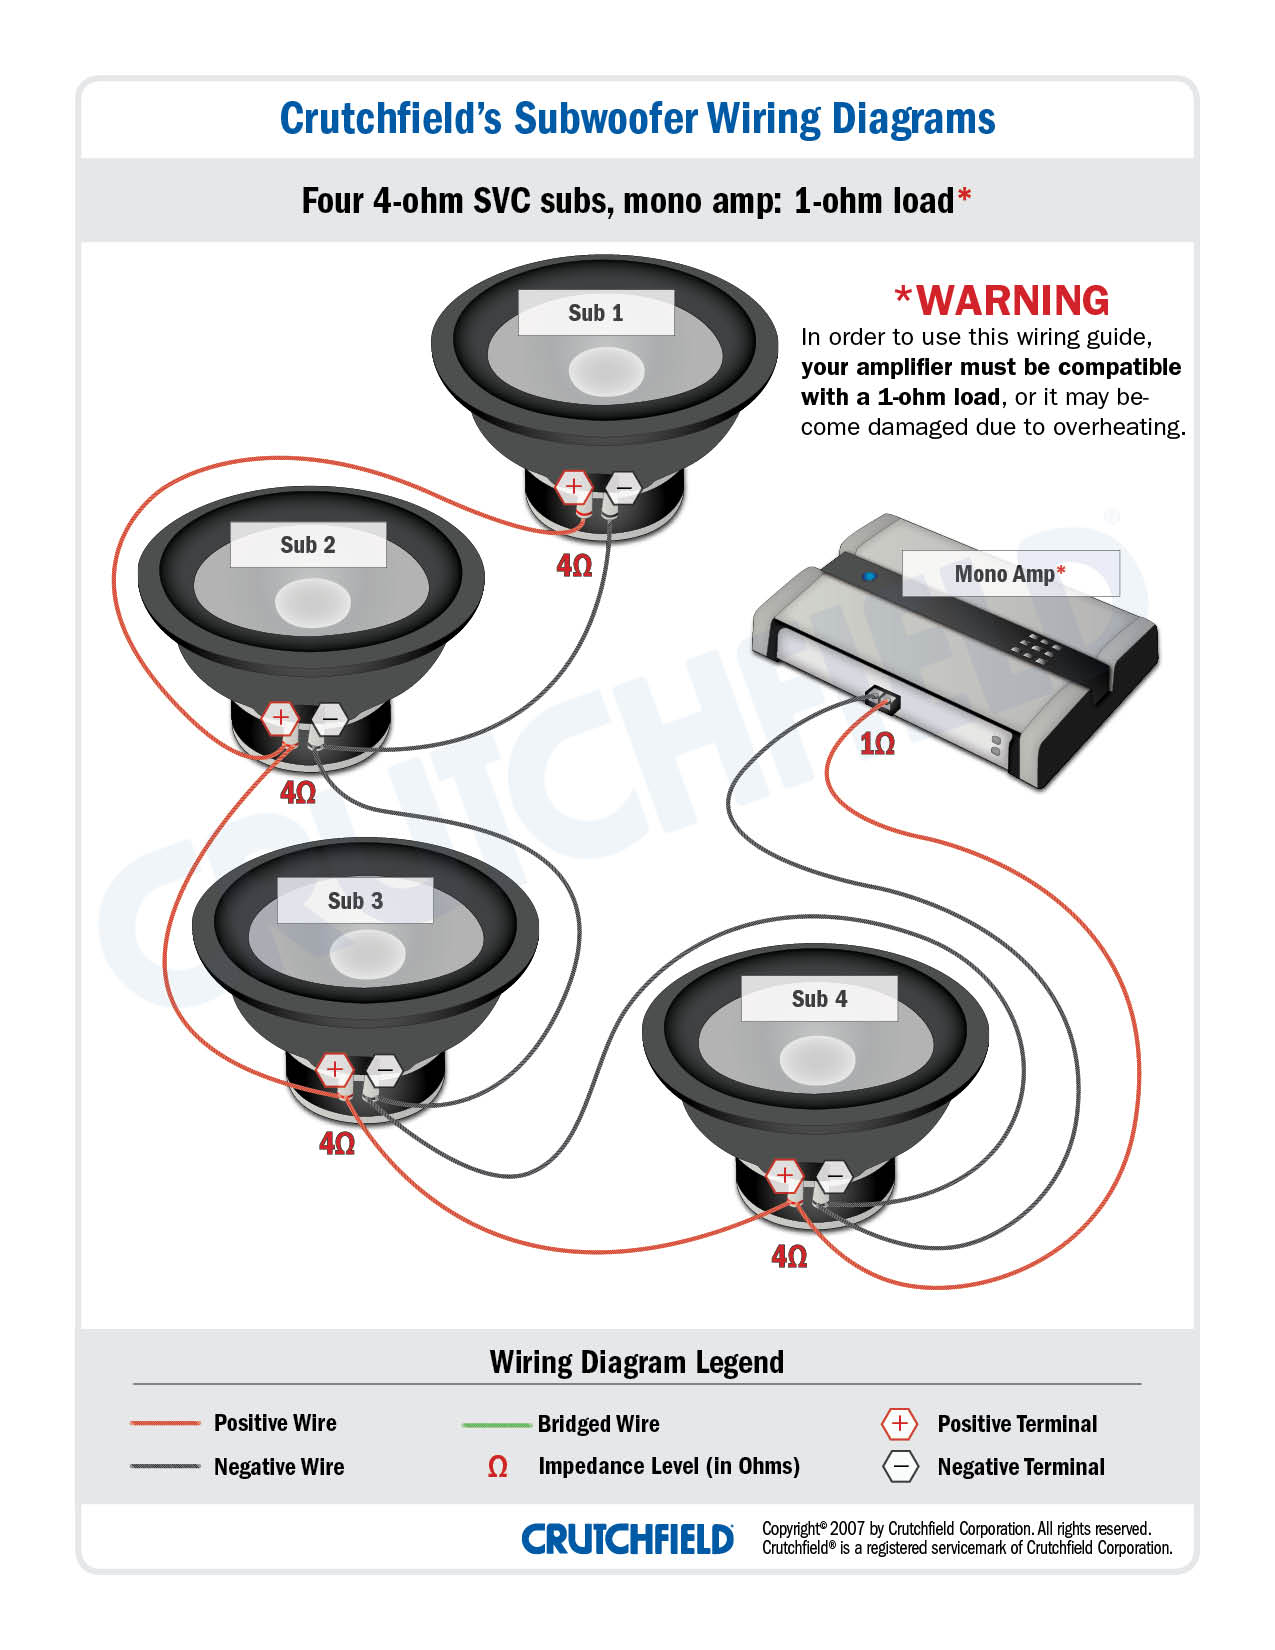 4 SVC 4 ohm mono low imp wiring subwoofers what's all this about ohms? crutchfield wiring diagrams at creativeand.co